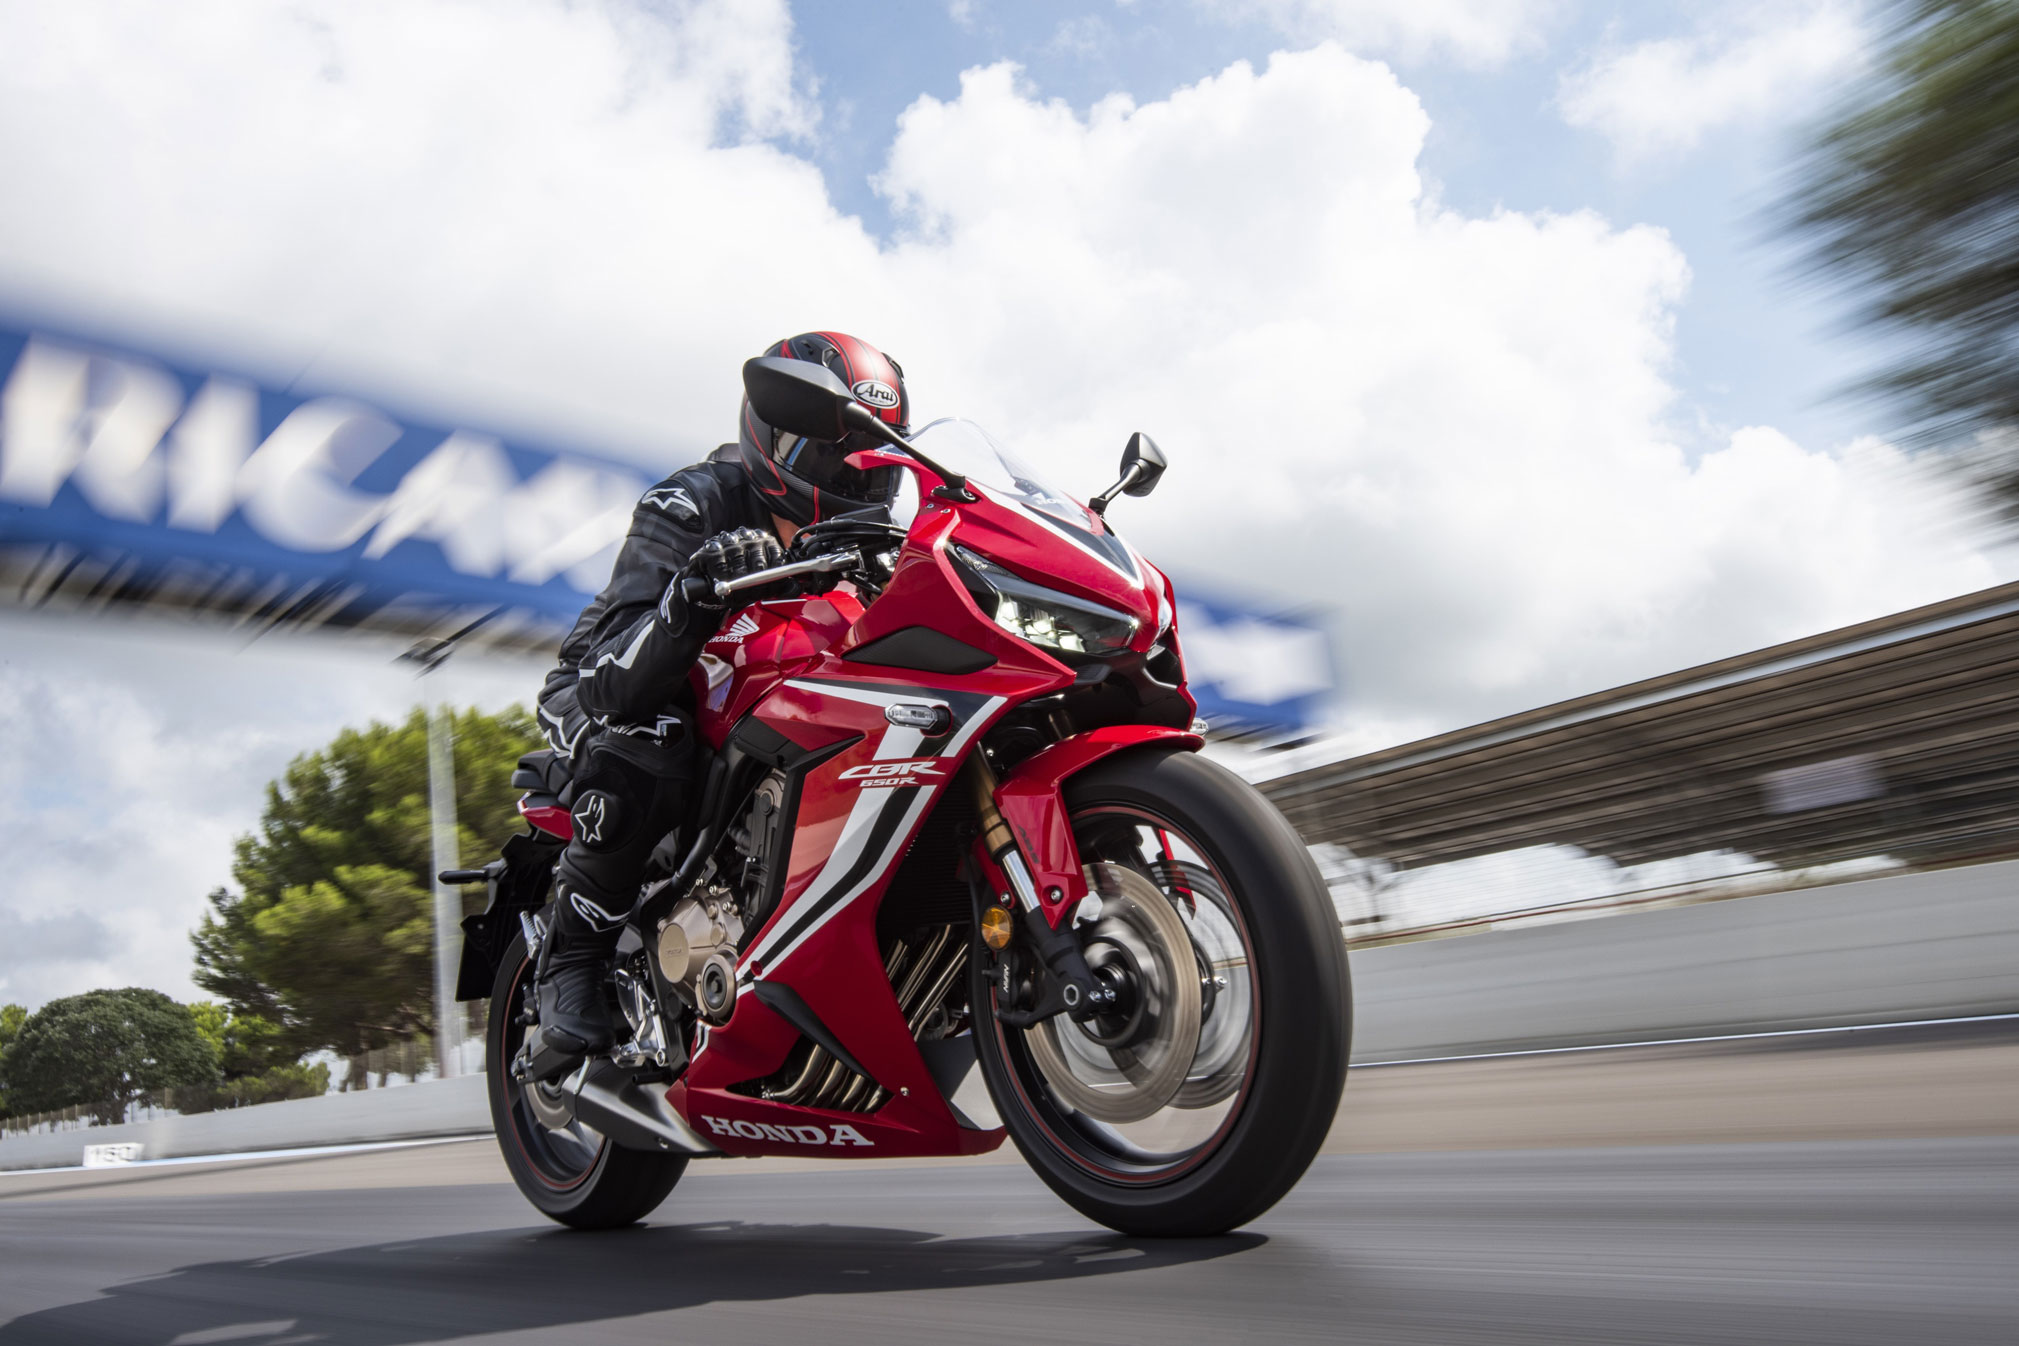 2019 Honda CBR650R Guide • Total Motorcycle